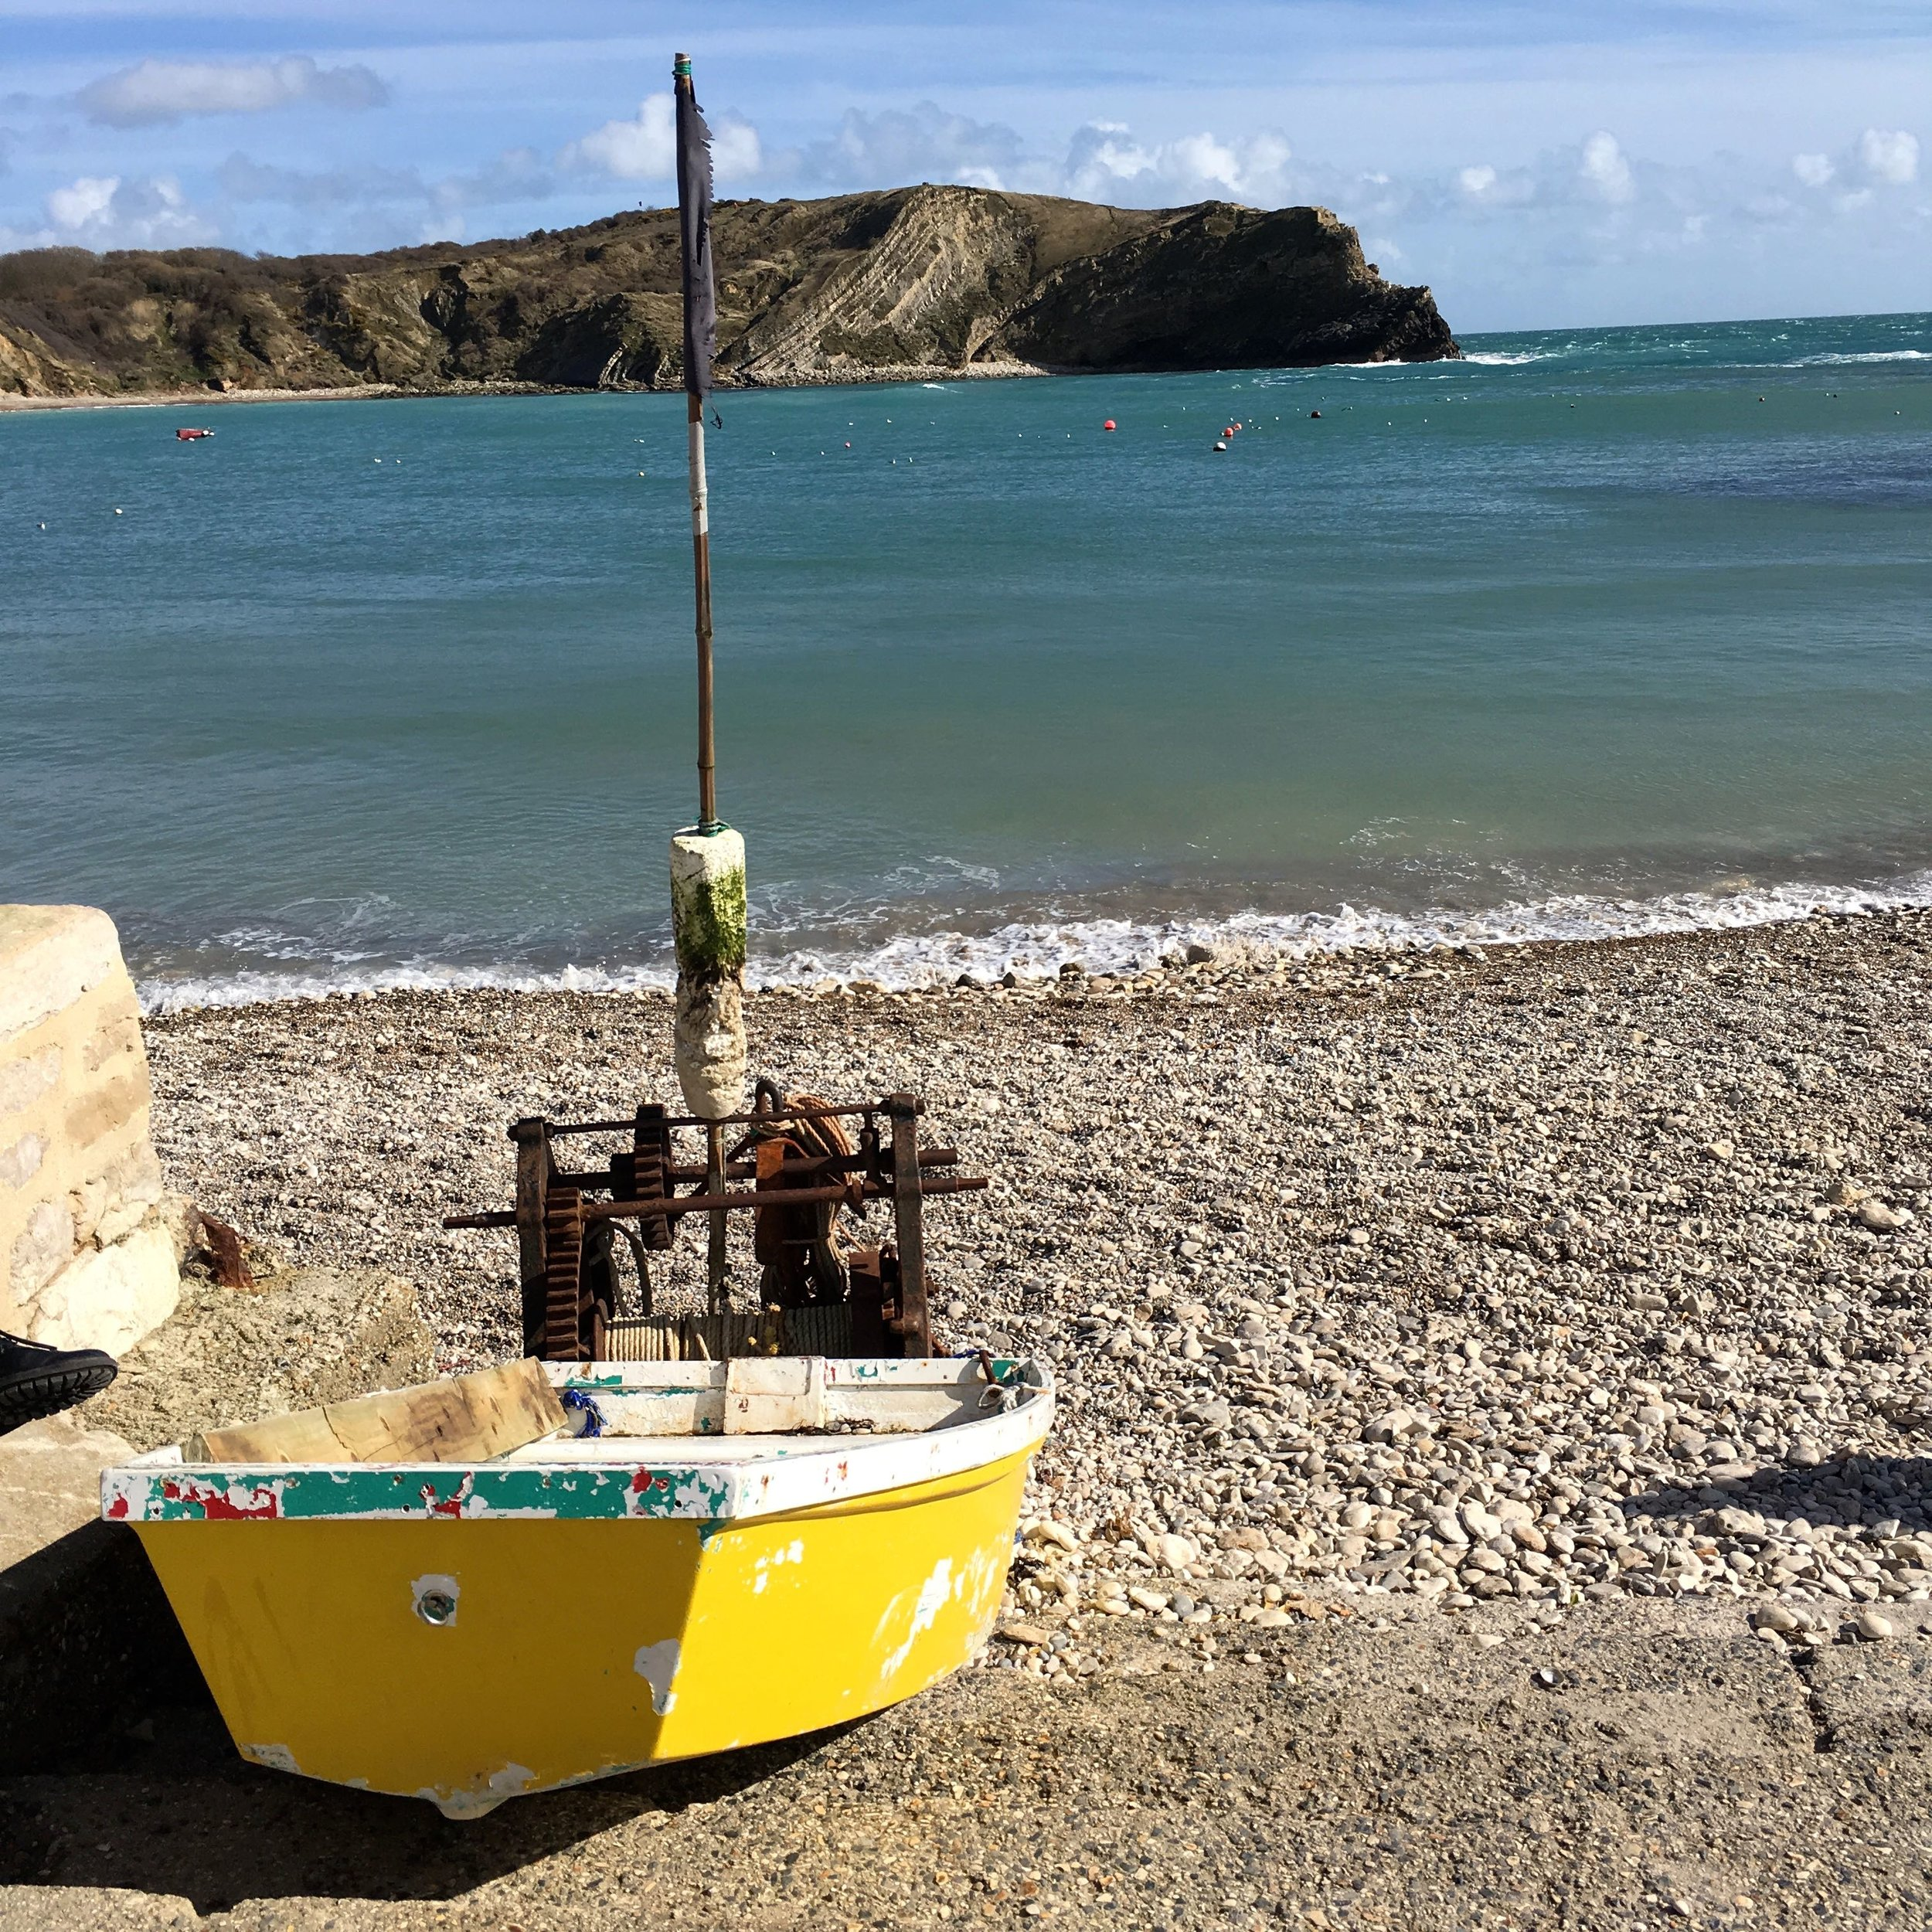 BLUE SKIES, BLUE SEA AND A DINKY YELLOW BOAT